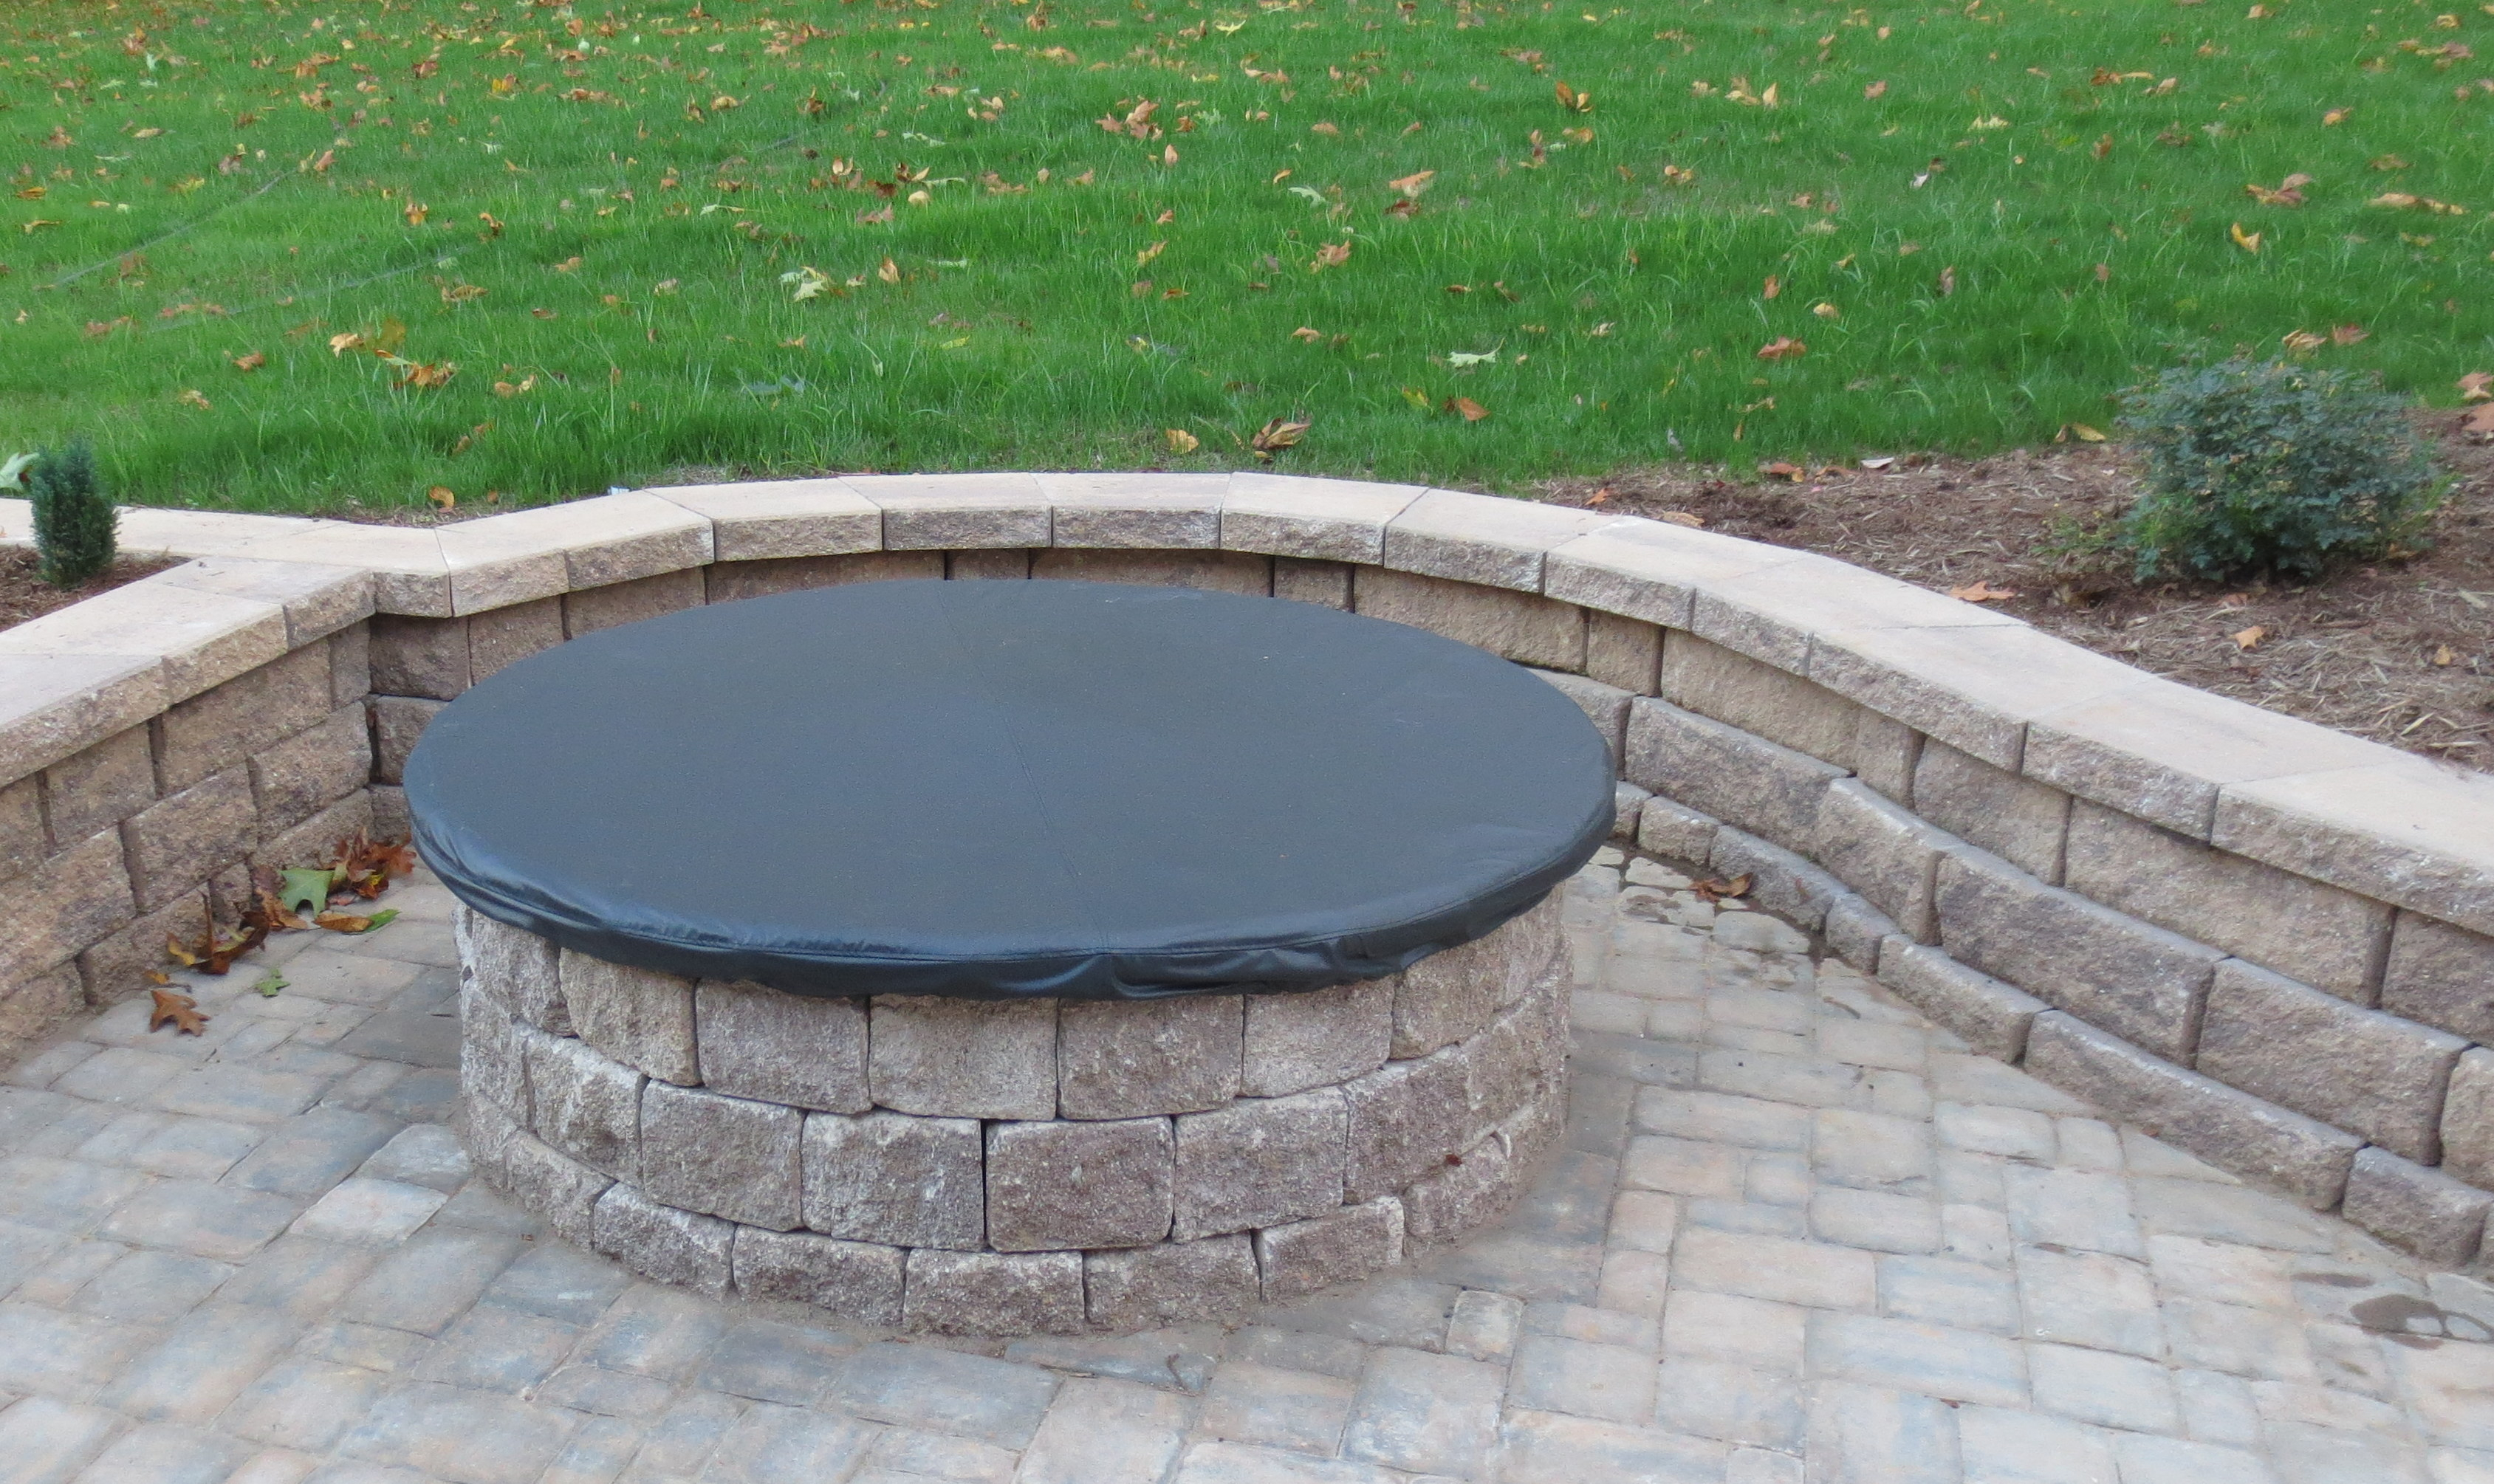 Fire Pit Cover Equip Home Fitness intended for measurements 3377 X 2010